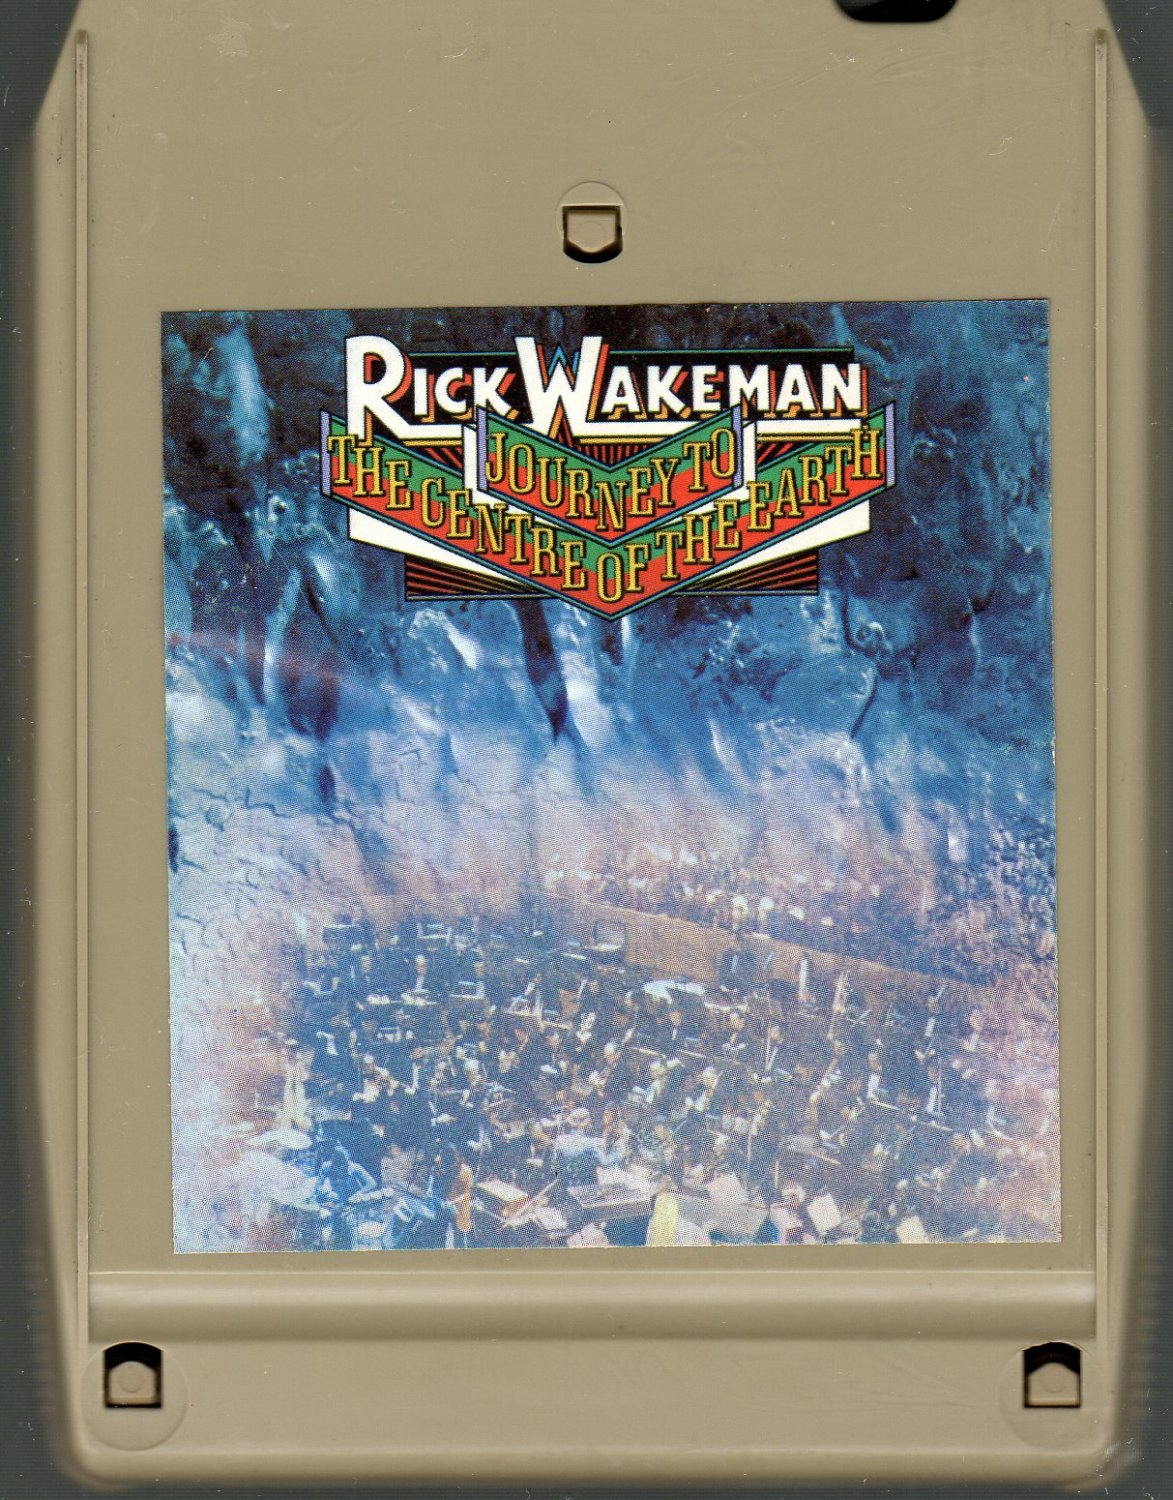 Rick Wakeman - Journey To The Centre Of The Earth 8-track tape